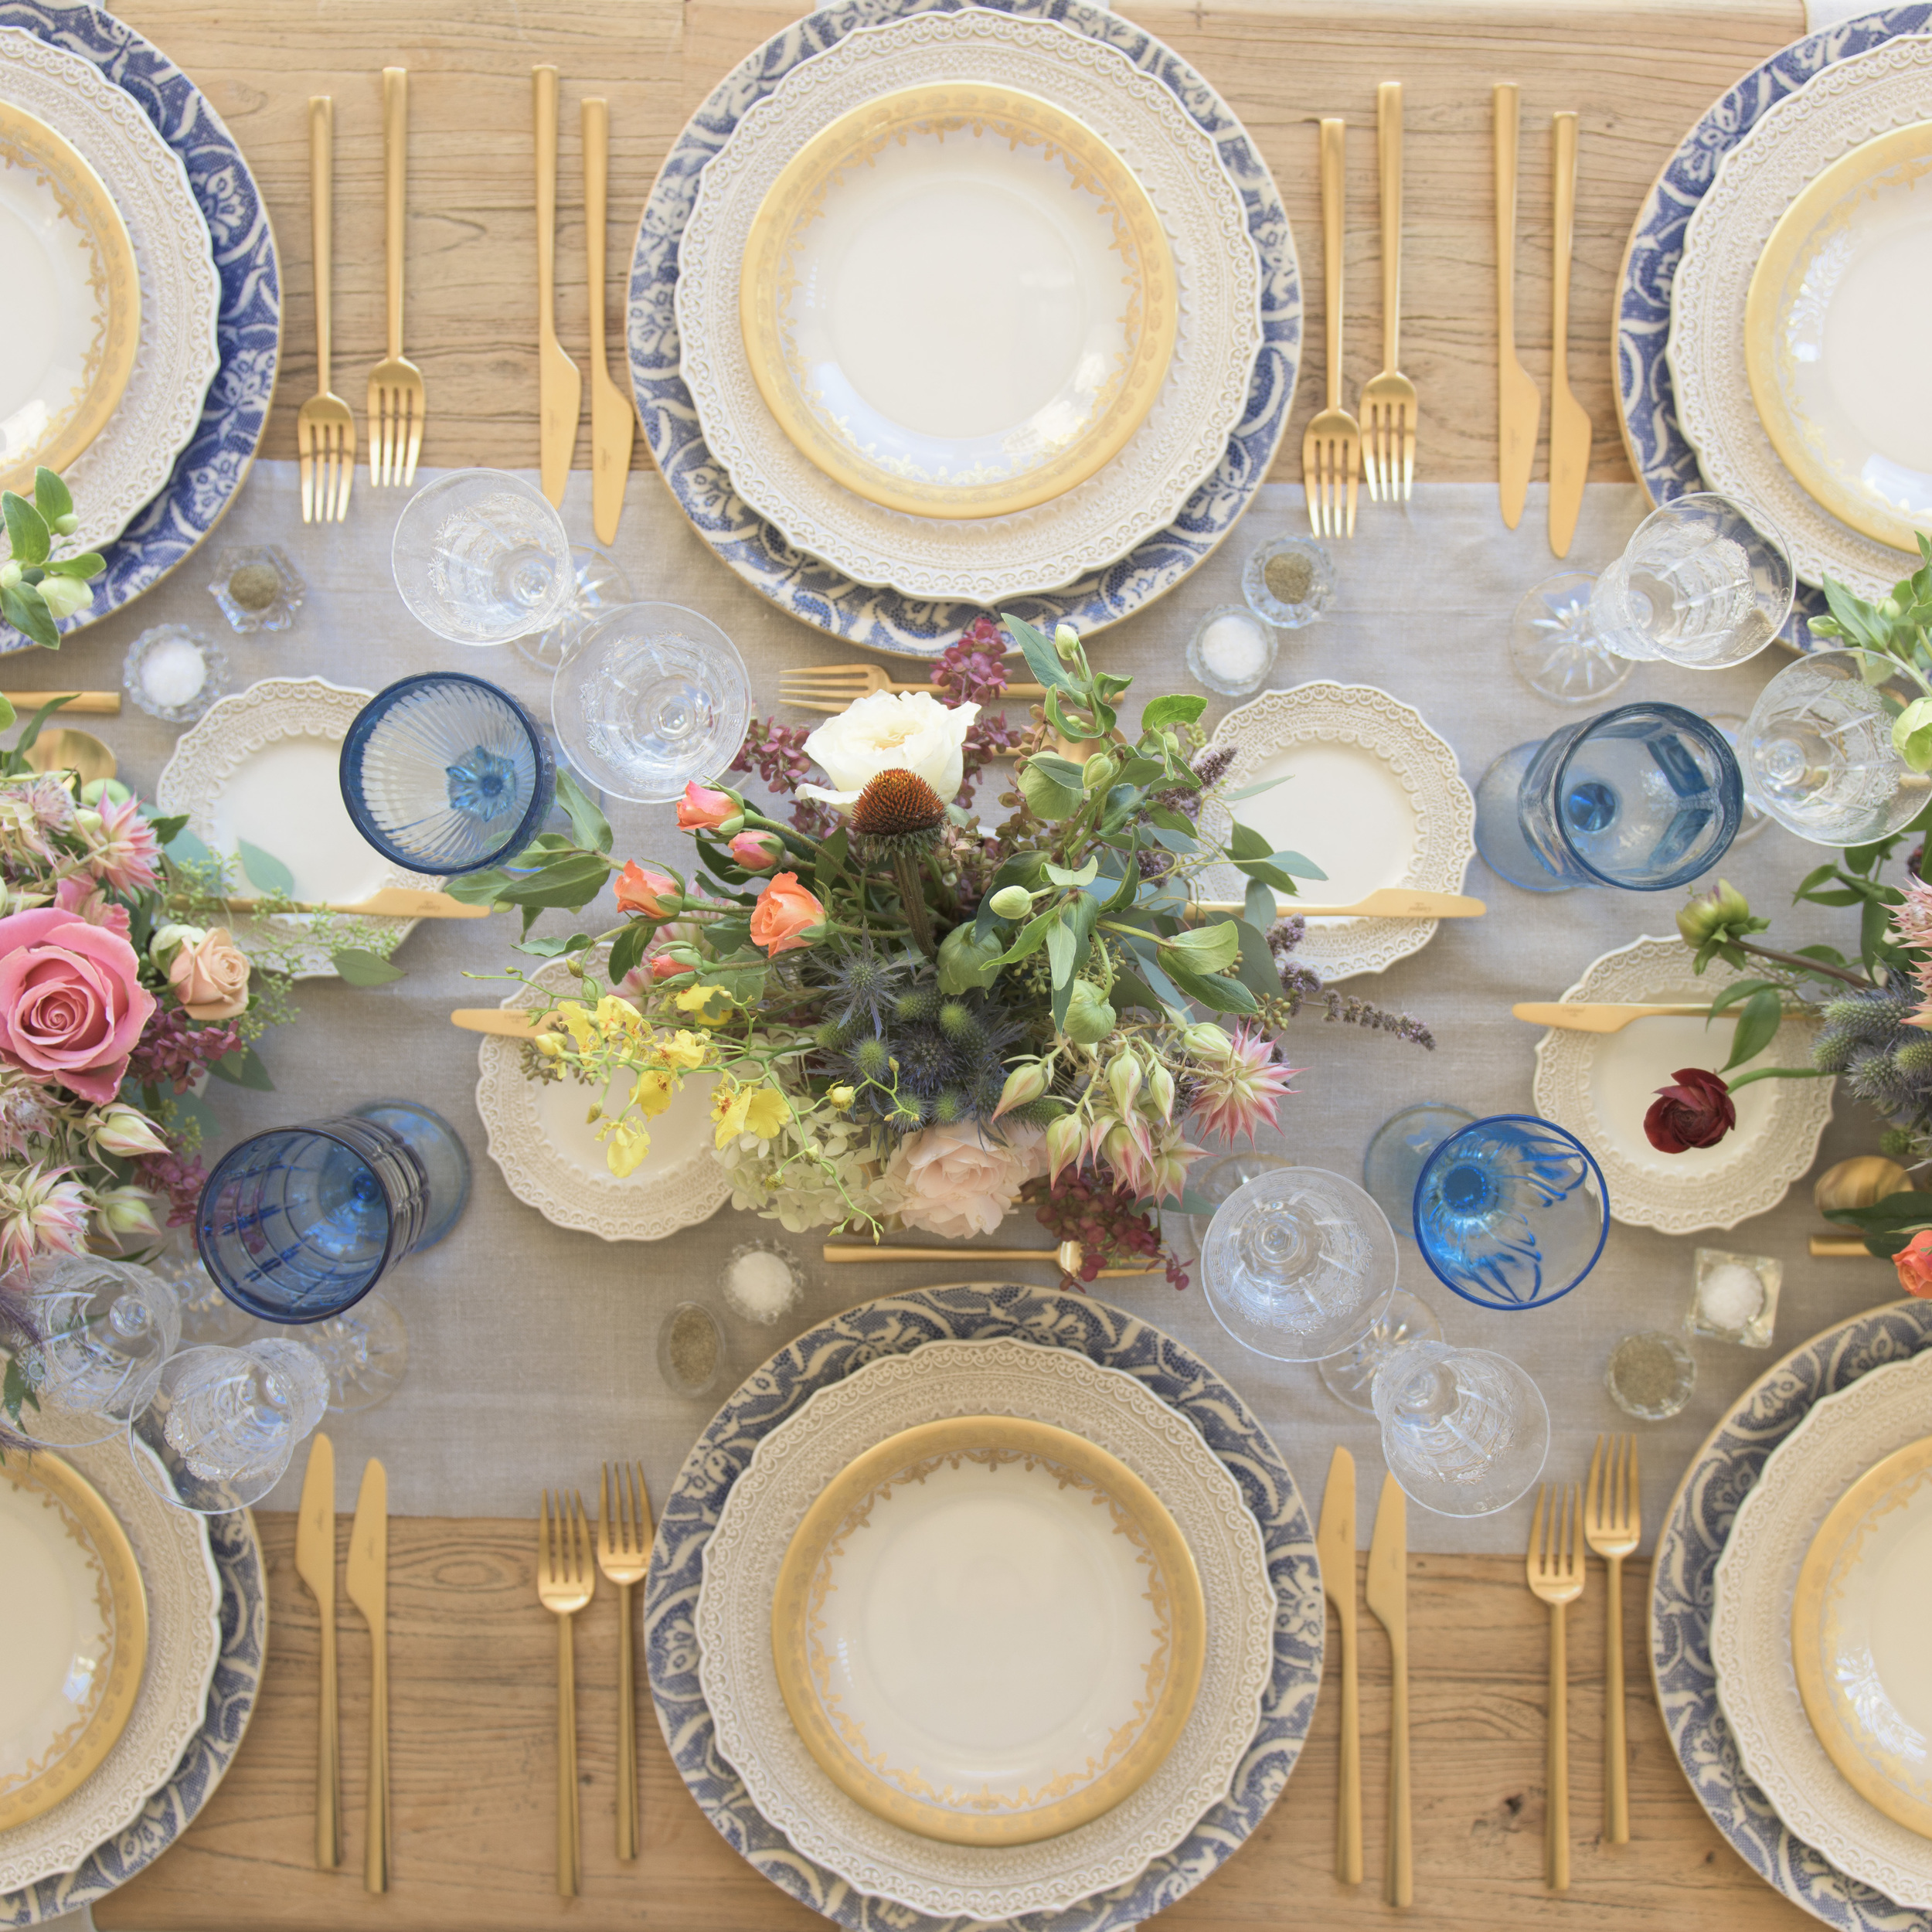 RENT: Blue Fleur de Lis Chargers + Lace Dinnerware in White + Versailles Glass Dinnerware in 24k Gold + Rondo Flatware in Brushed 24k Gold + Light Blue Vintage Goblets + Czech Crystal Stemware + Antique Crystal Salt Cellars   SHOP: Rondo Flatware in Brushed 24k Gold